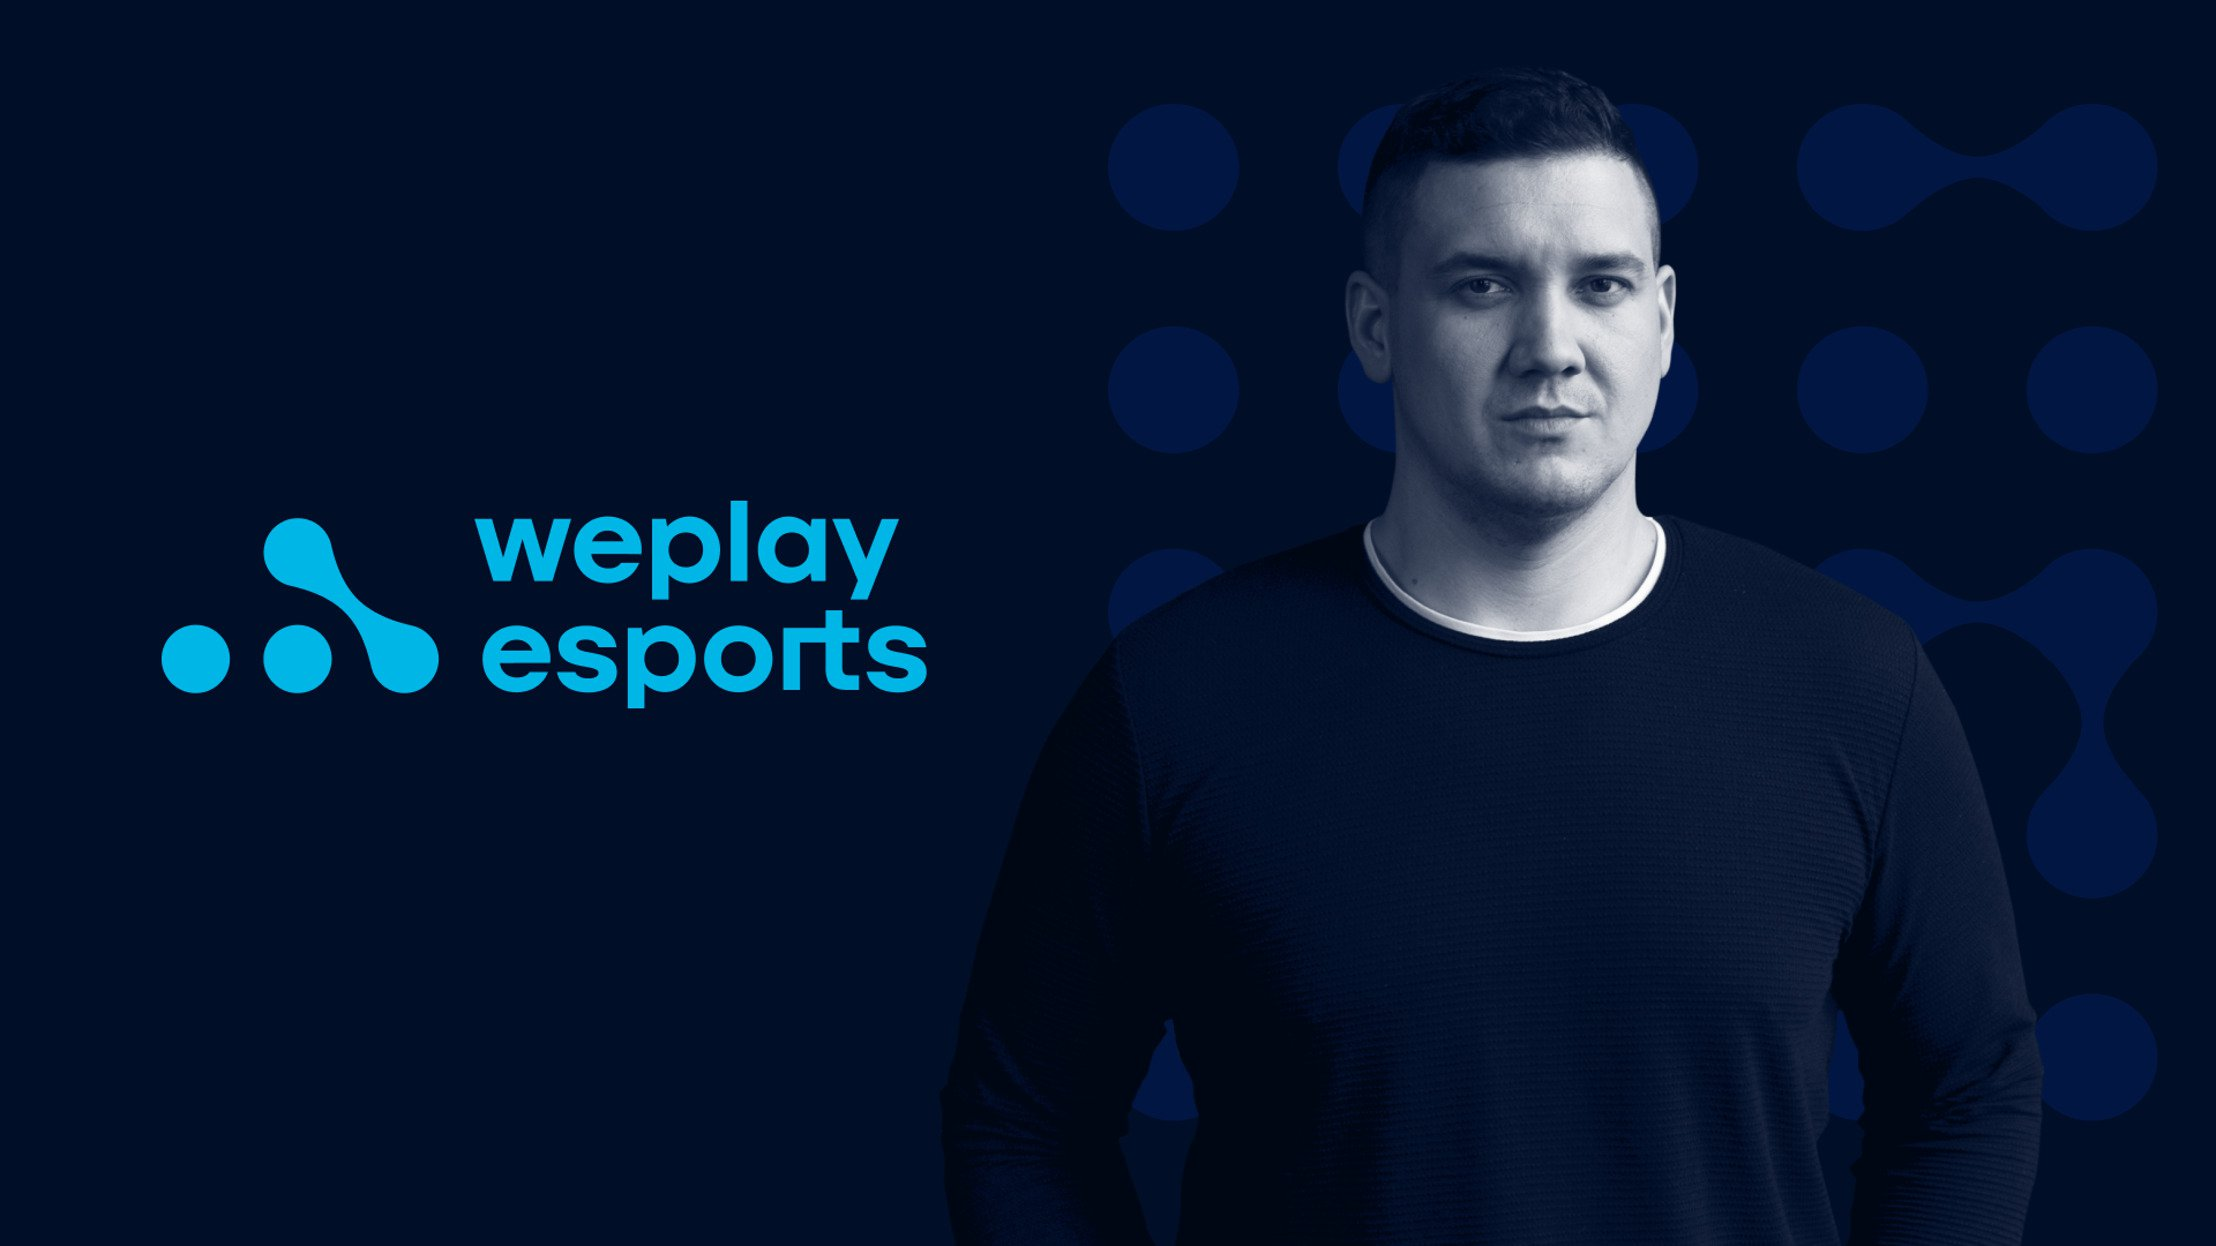 About the reorganization of WePlay Esports